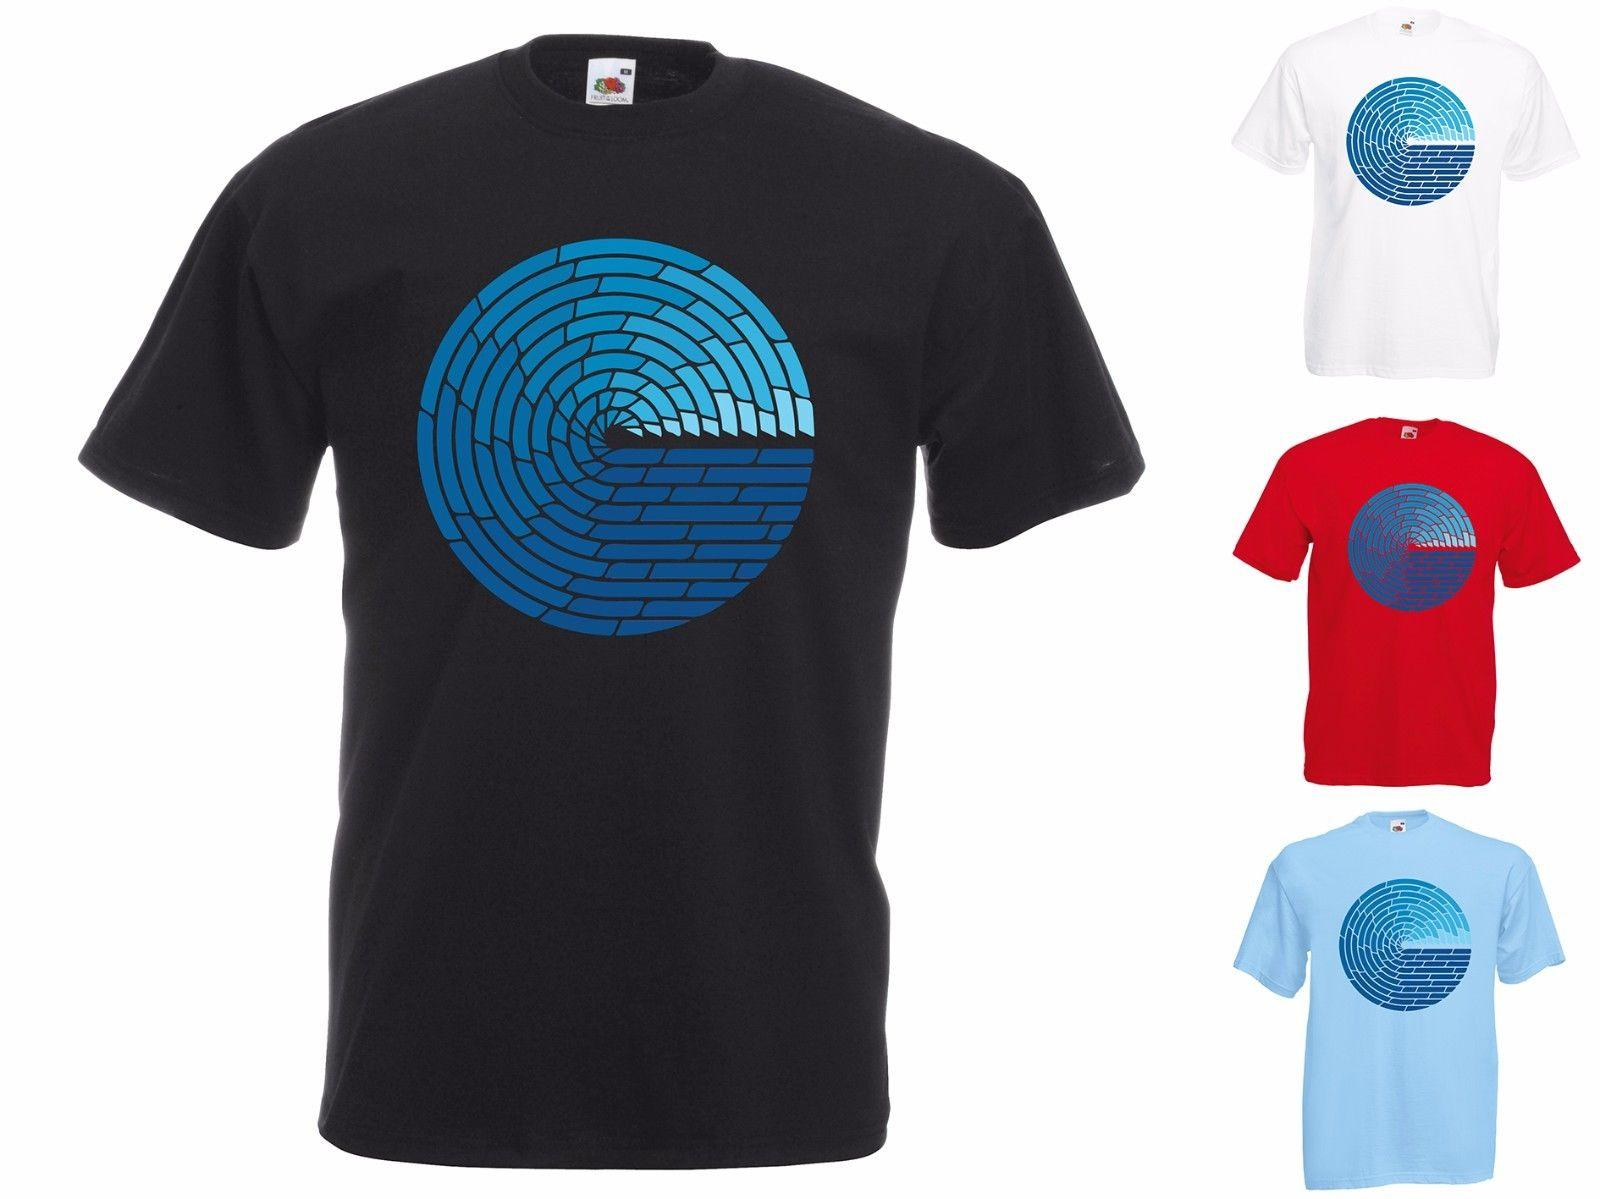 b9cde236f Surf Wave T Shirt Sun Surfboard Beach Sand Sea Ocean As T Shirts Fun Tee  Shirts From Vectorbomb, $11.01| DHgate.Com